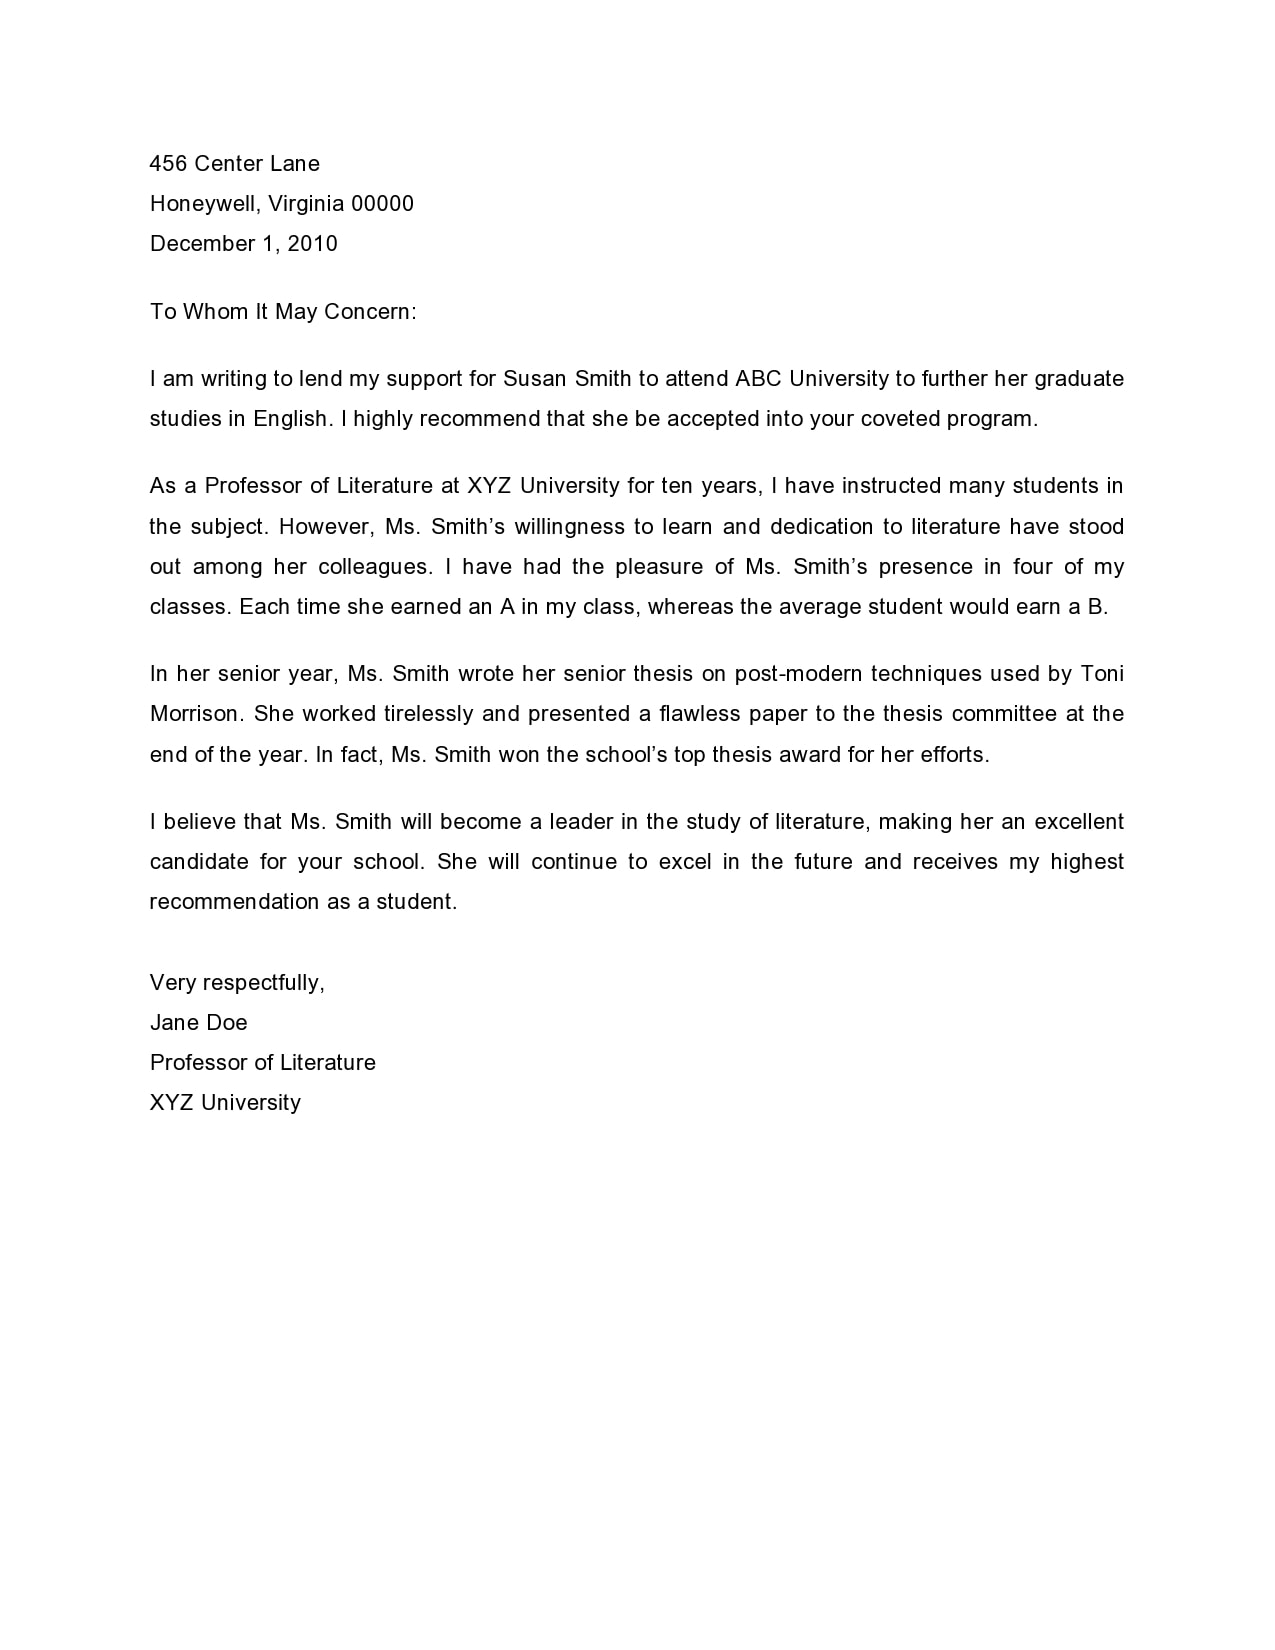 Letter Of Recommendation For Teacher from templatearchive.com